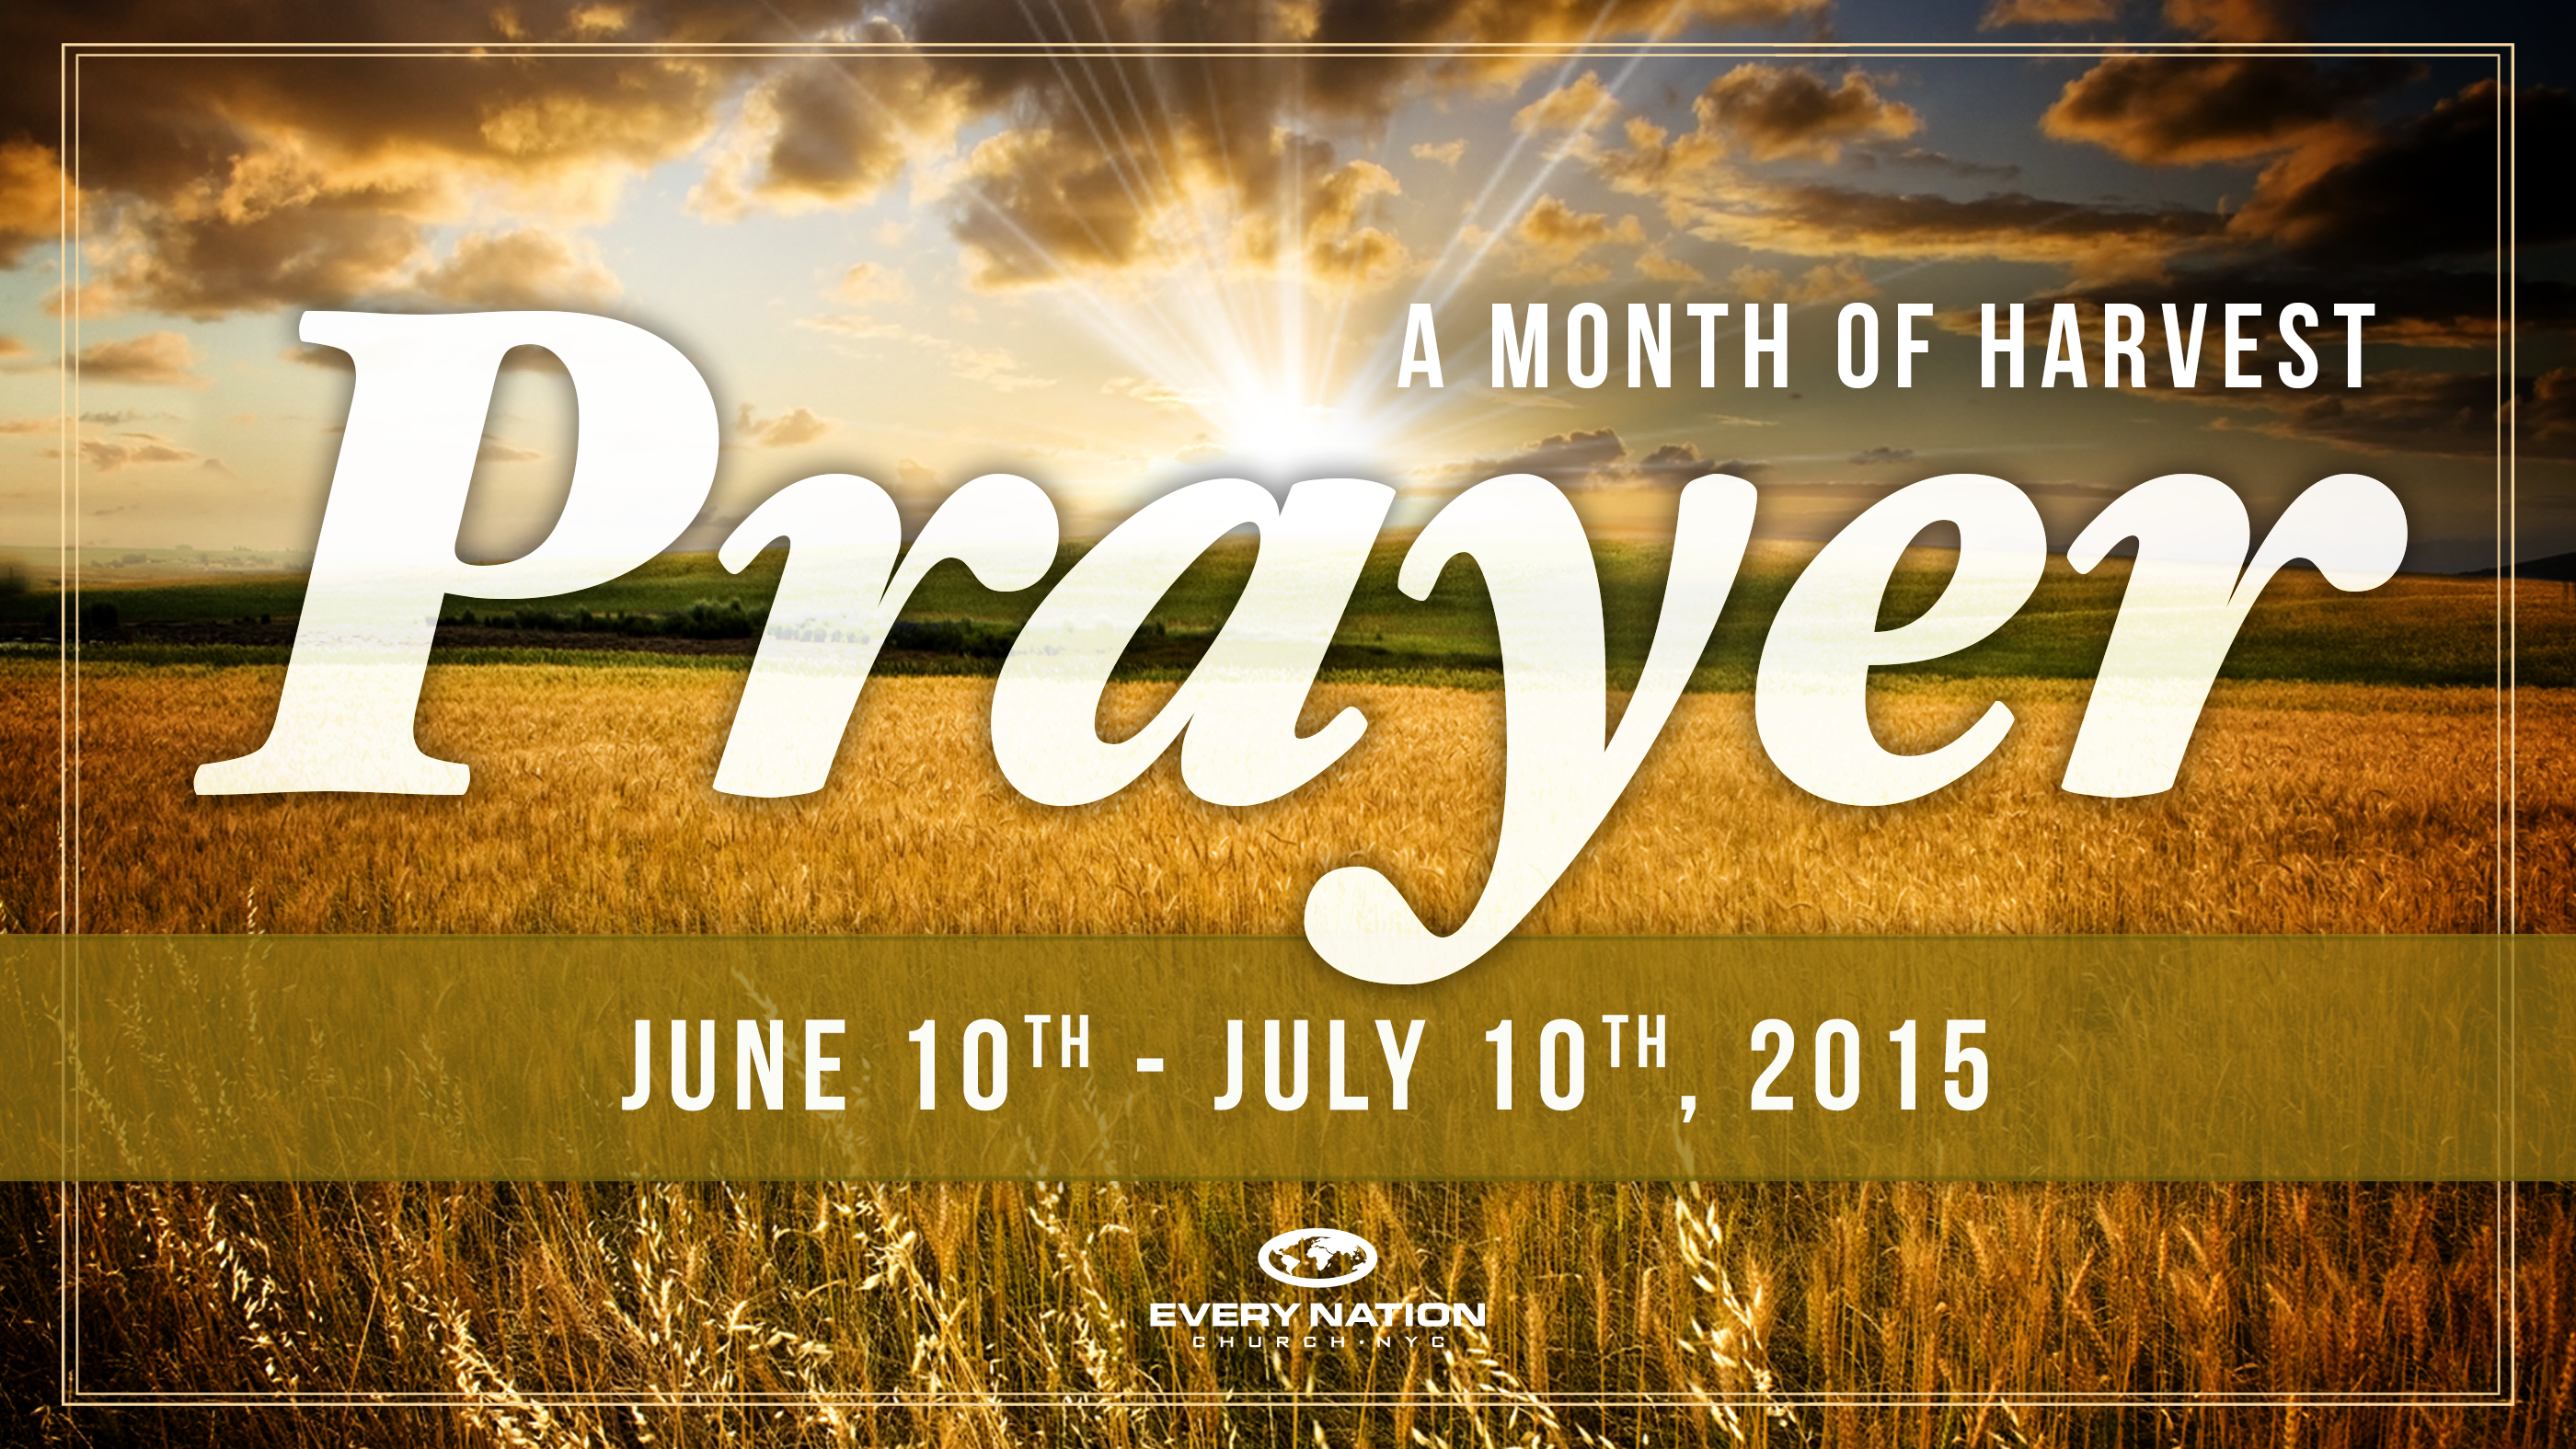 Month of Harvest Prayer for CityFest